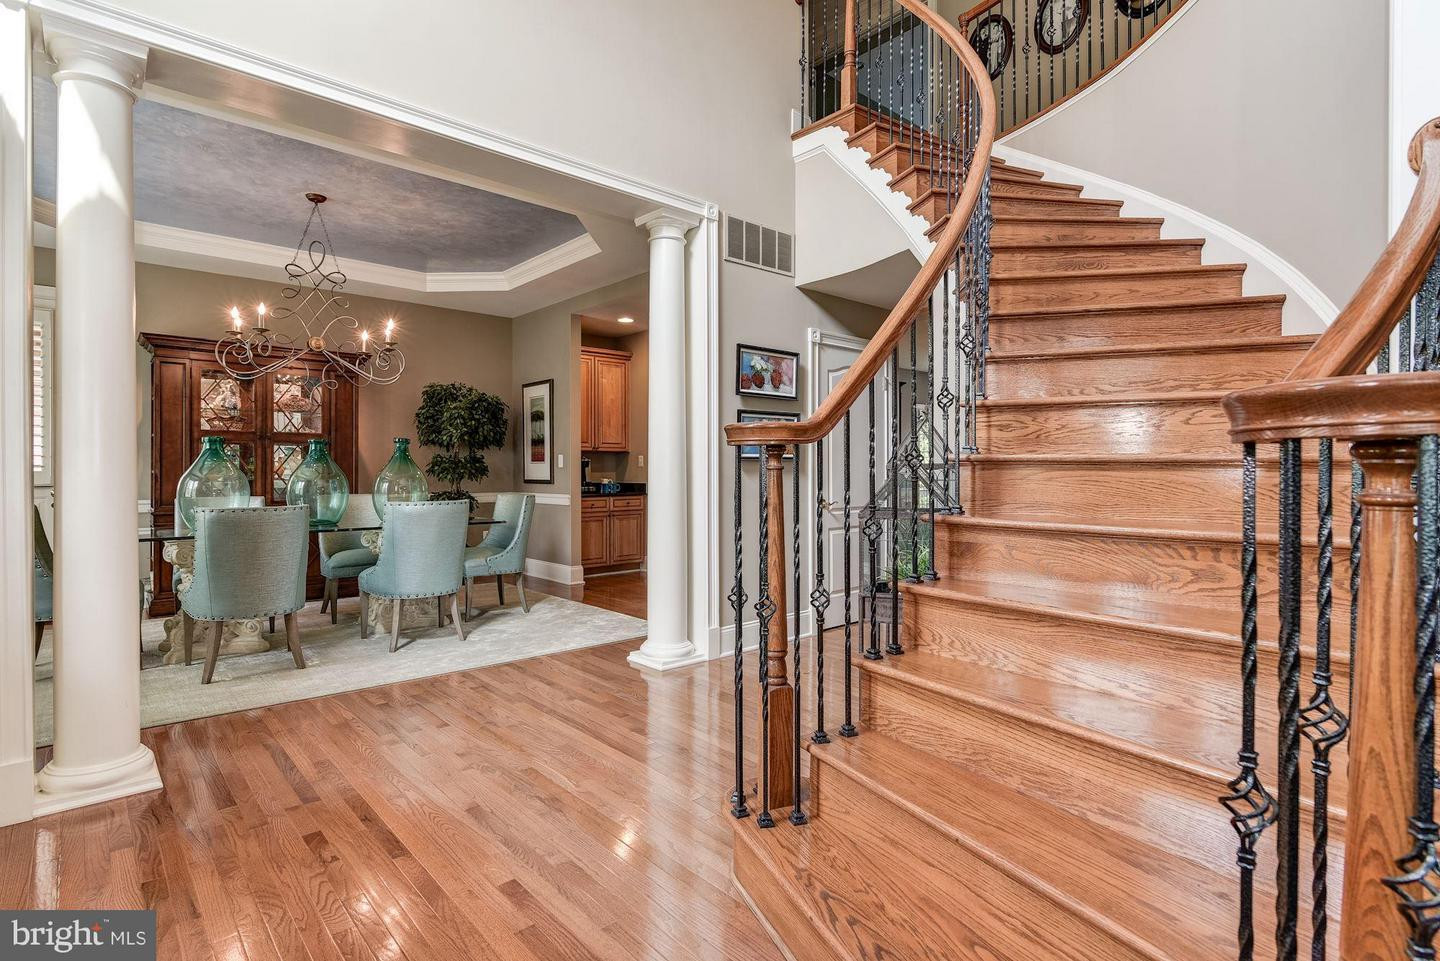 five star hardwood flooring reno of glenelg homes for sale monument sothebys international realty intended for 300889823397 1440 1080 wm u8kzjej oygl8x6n